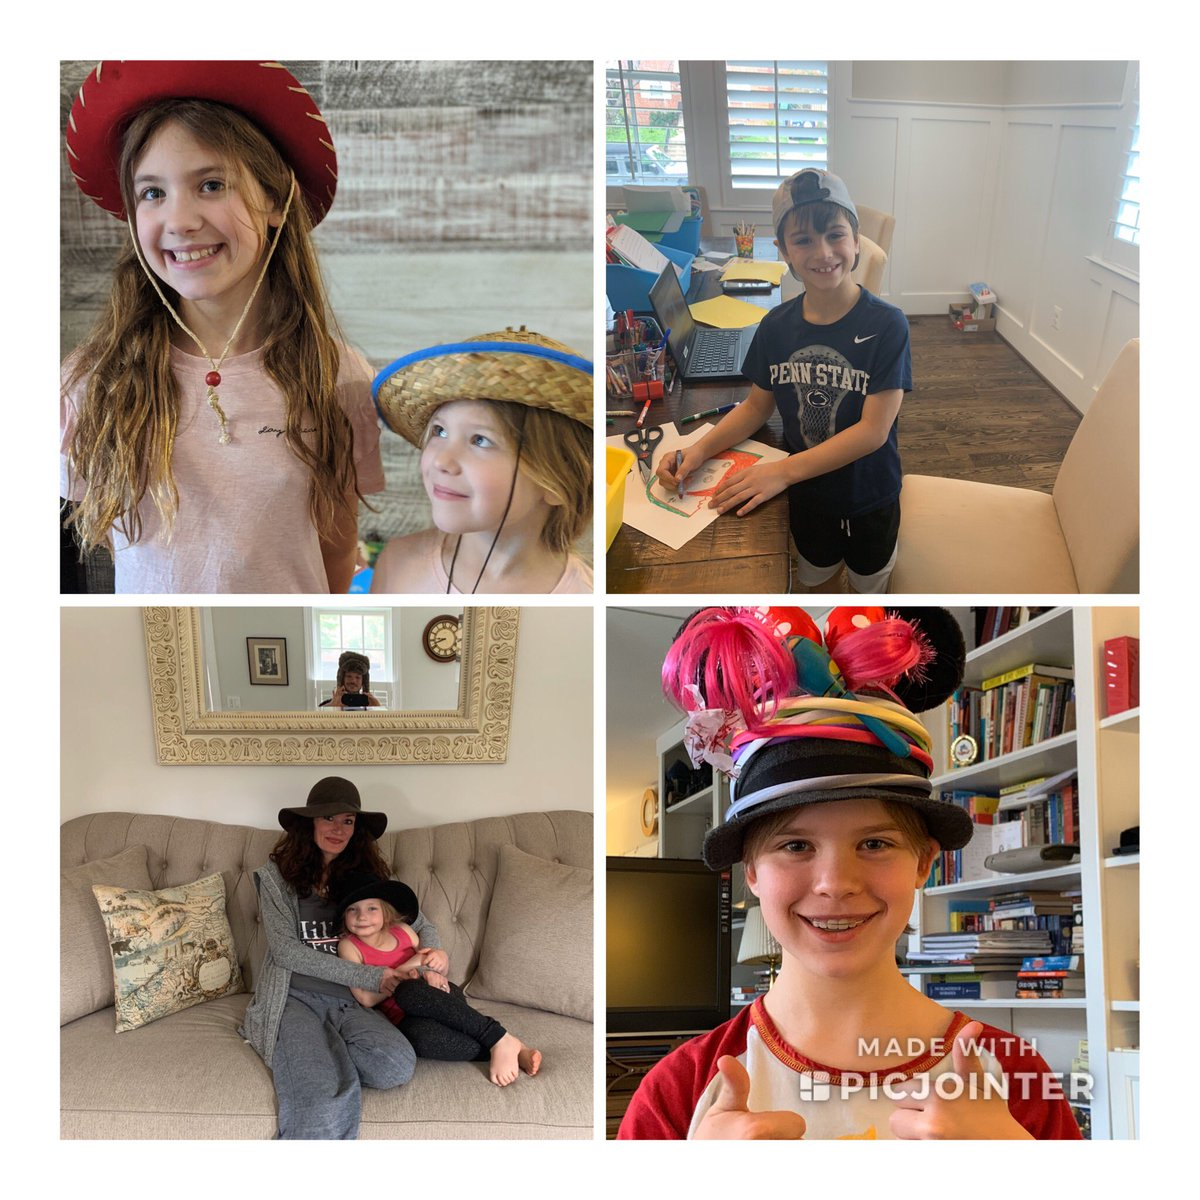 Virtual Hat day at Glebe with Glebers and folks from APS Central Office! Thank you all for joining our spirit!<a target='_blank' href='http://twitter.com/glebepta'>@glebepta</a> <a target='_blank' href='http://twitter.com/APSVirginia'>@APSVirginia</a> <a target='_blank' href='http://search.twitter.com/search?q=GlebeEagles'><a target='_blank' href='https://twitter.com/hashtag/GlebeEagles?src=hash'>#GlebeEagles</a></a> Follow along it will be many tweets! <a target='_blank' href='https://t.co/W250NrGbCV'>https://t.co/W250NrGbCV</a>